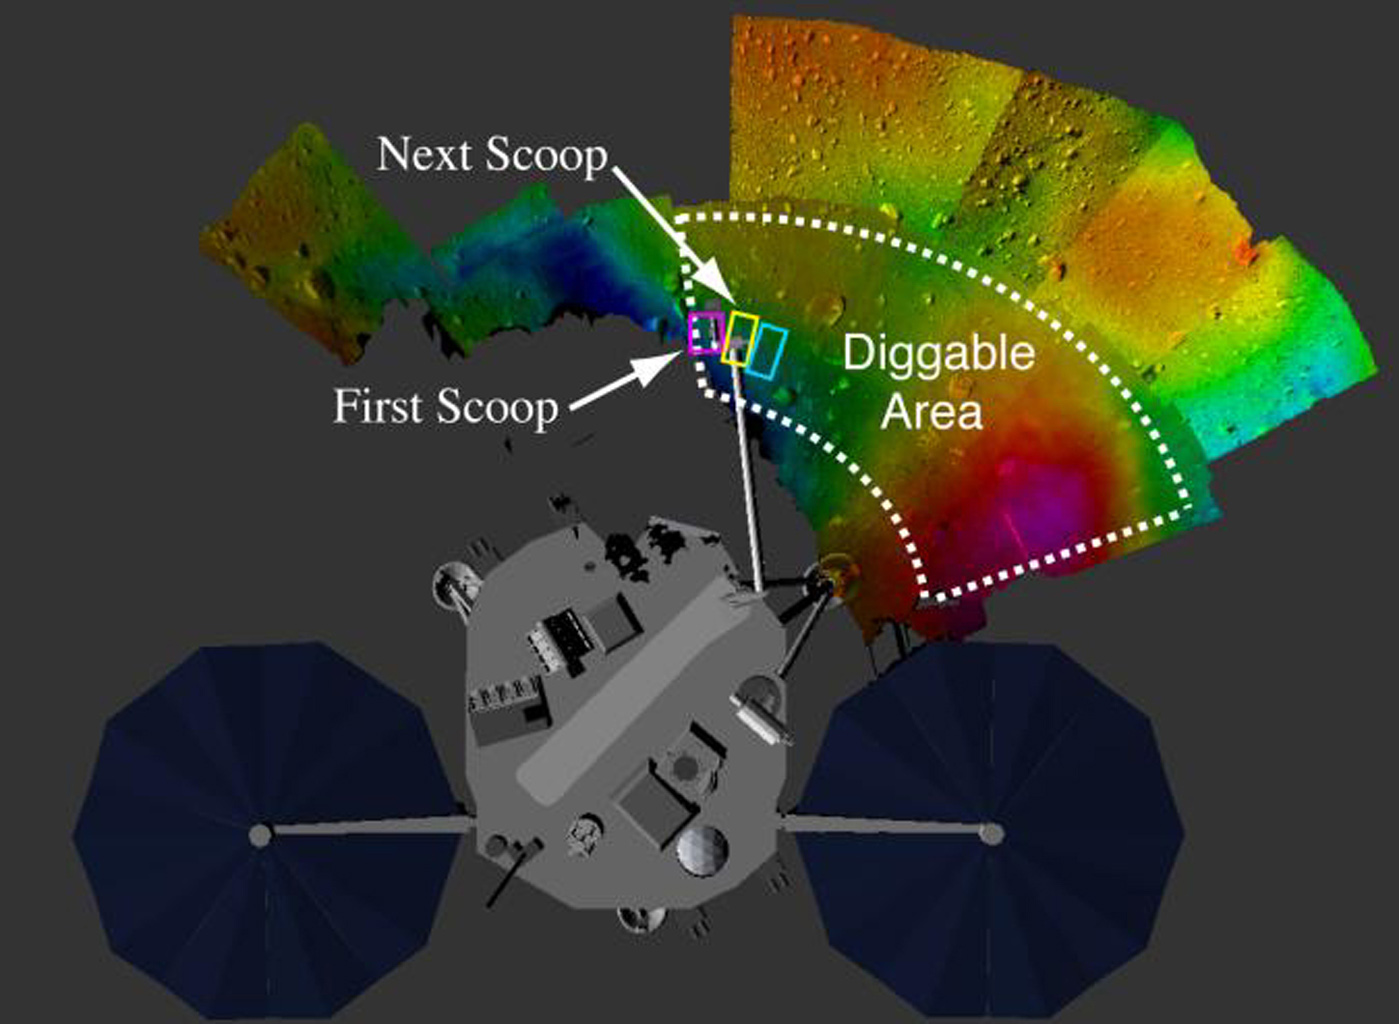 This image shows where NASA's Phoenix Mars Lander's Robotic Arm scoop started digging, and the next areas planned for digging on the martian surface in 2008.